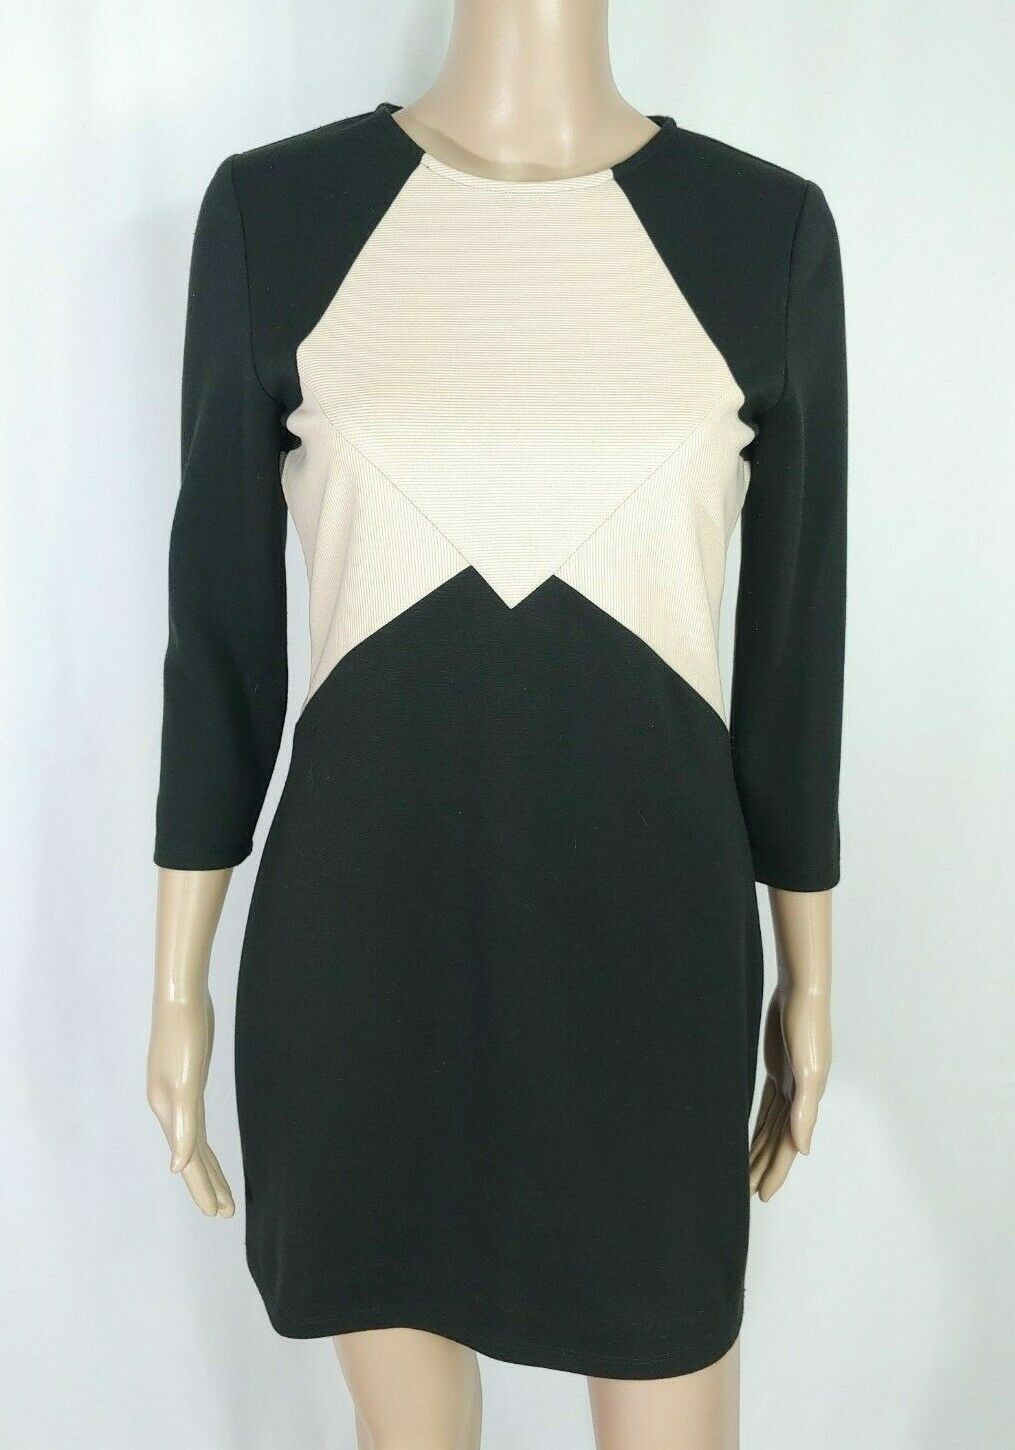 Very J Nordstrom Black Blush Pink Nude Ribbed Colorblock Sheath Shirt Dress M